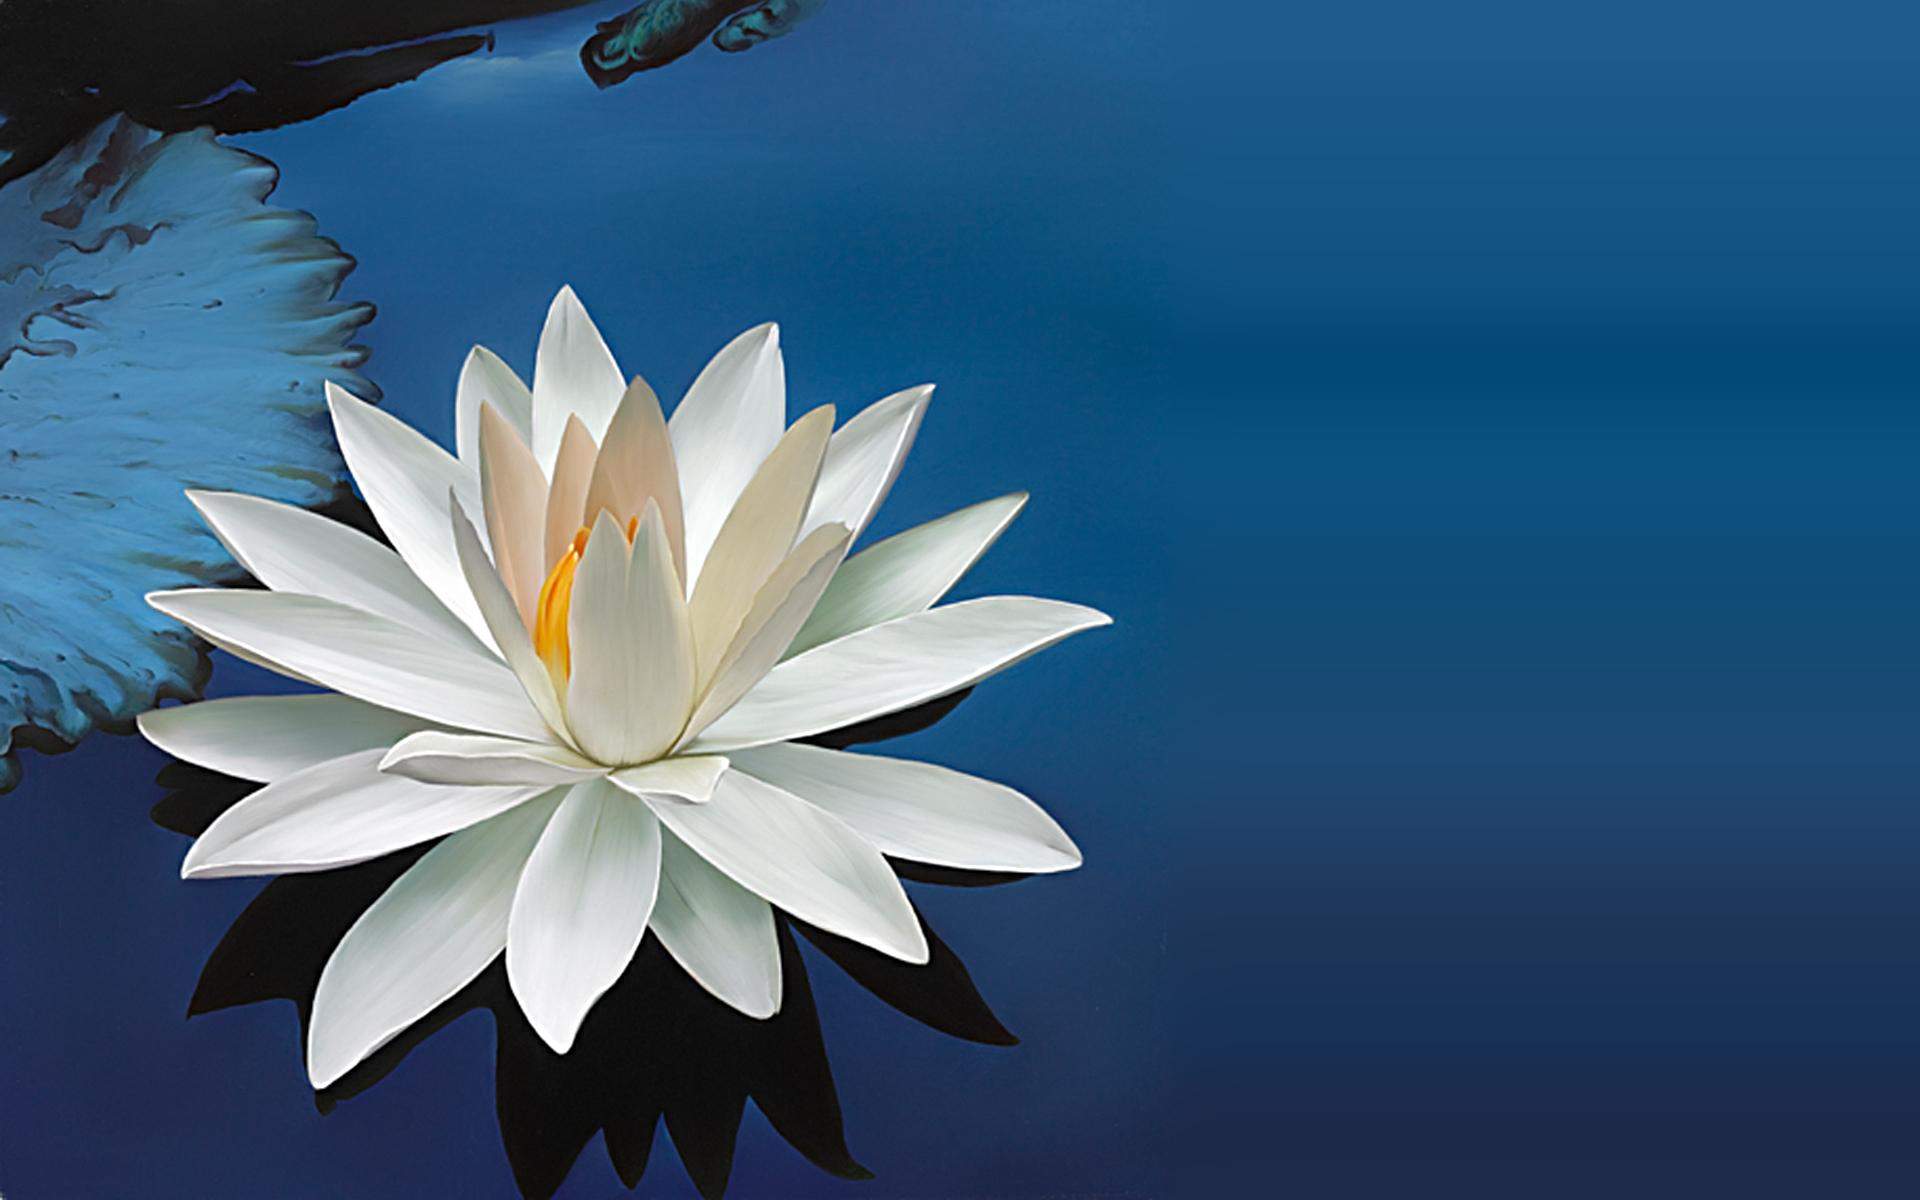 White egyptian lotus the national flower of egypt national flower of india white lotus mightylinksfo